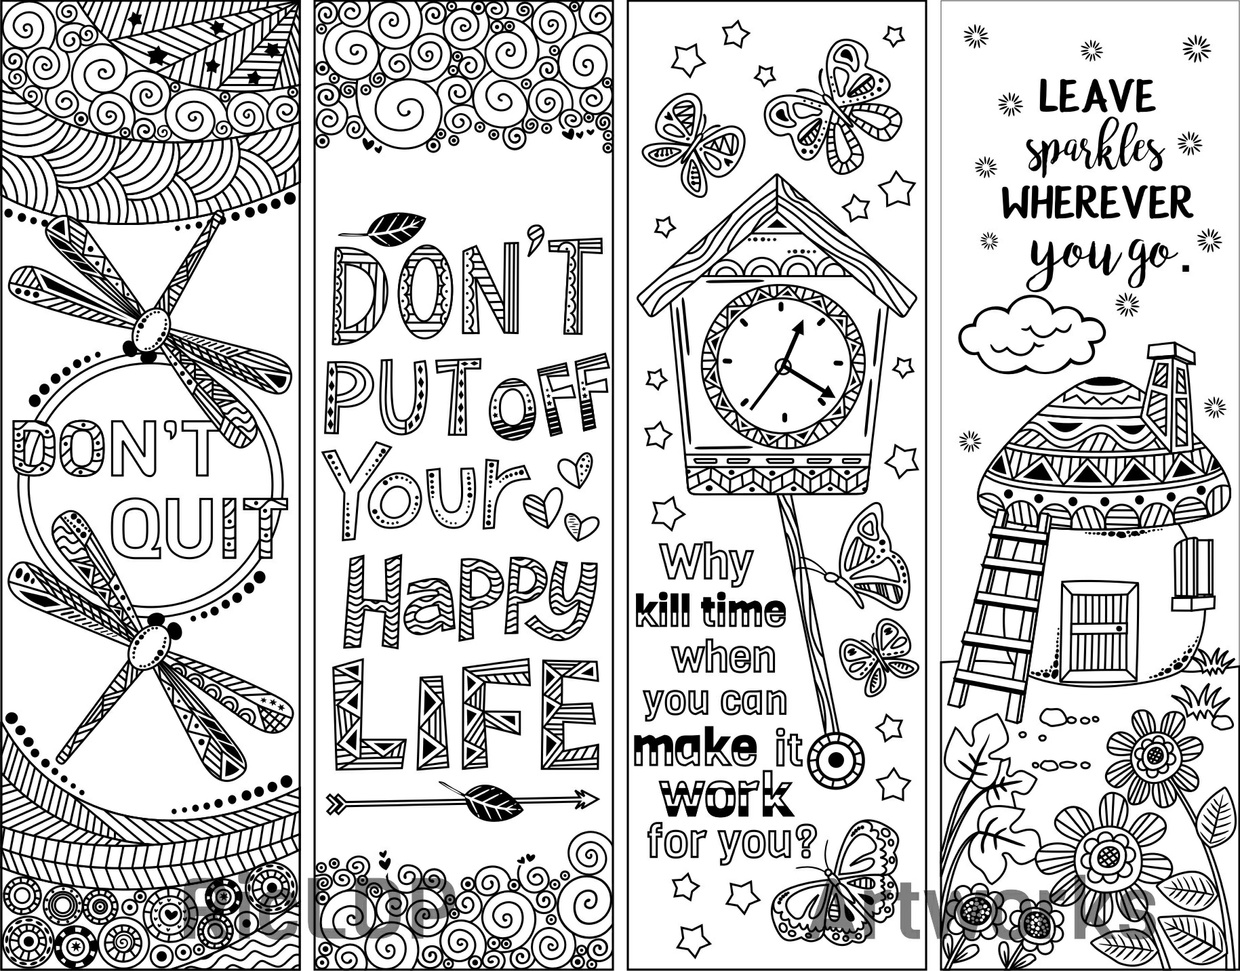 8 Coloring Bookmark Doodles With Quotes RicLDP Artworks